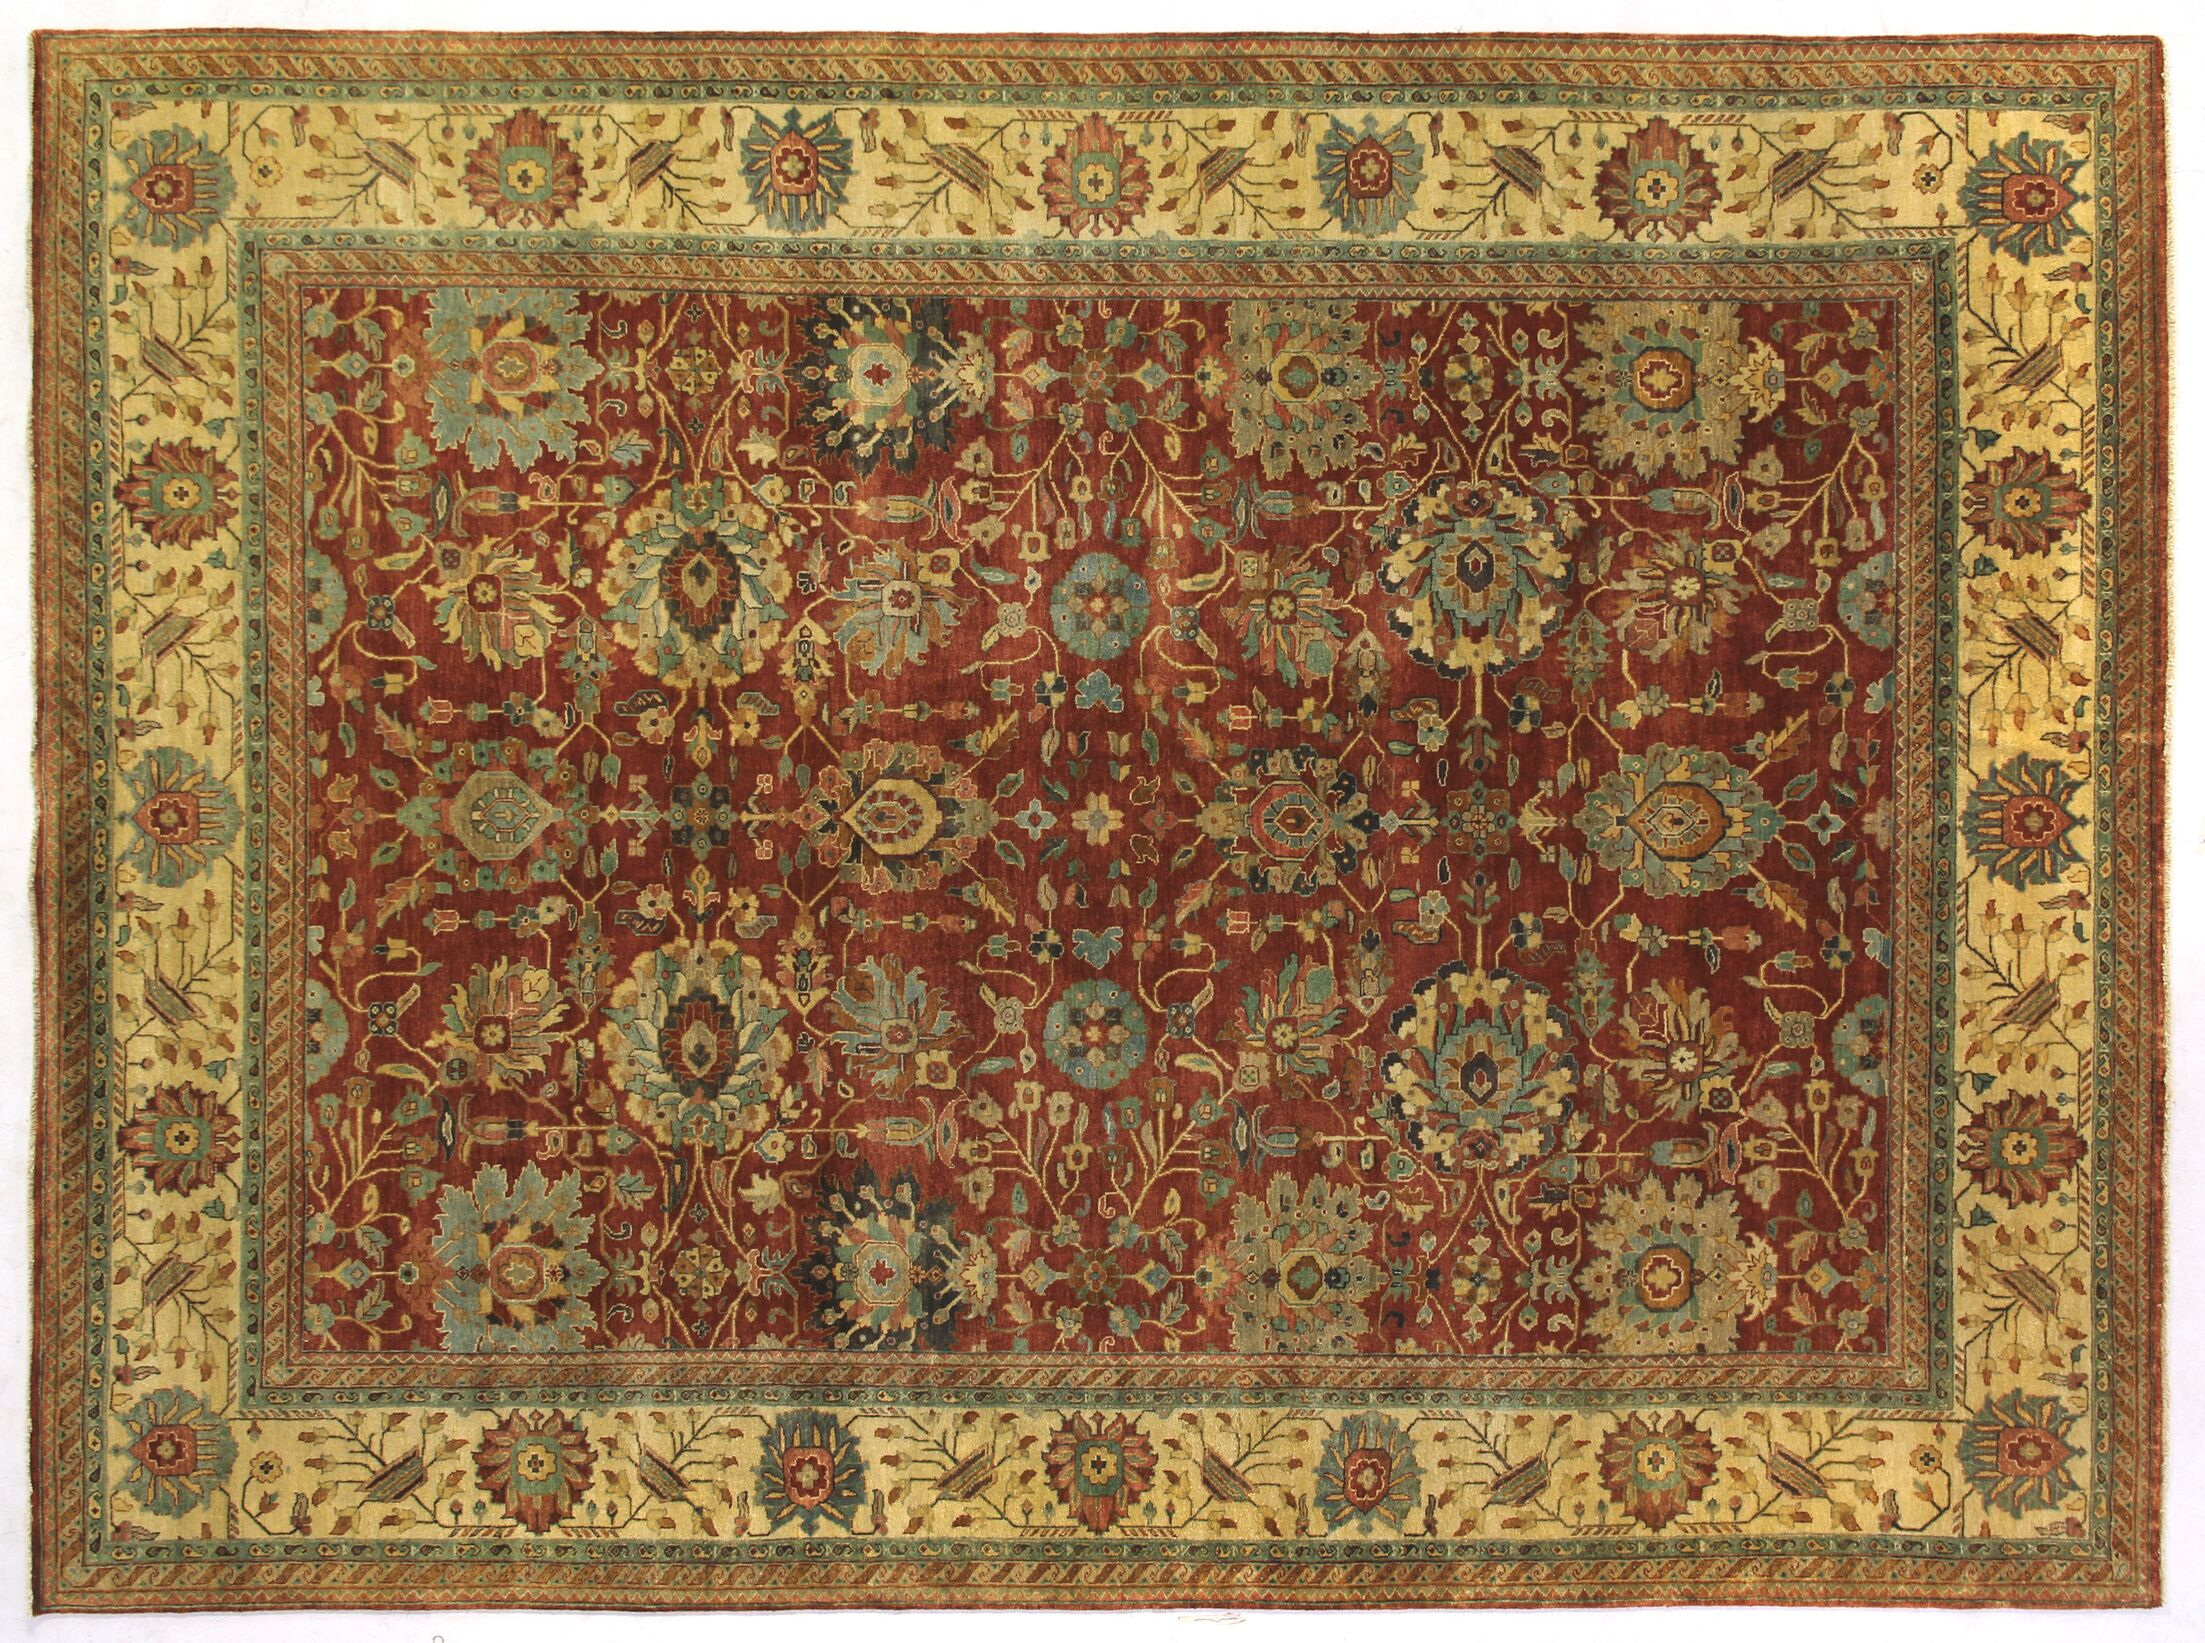 Serapi Hand-Knotted Wool Rust/Light Gold/Brown Area Rug Rug Size: Rectangle 14' x 18'